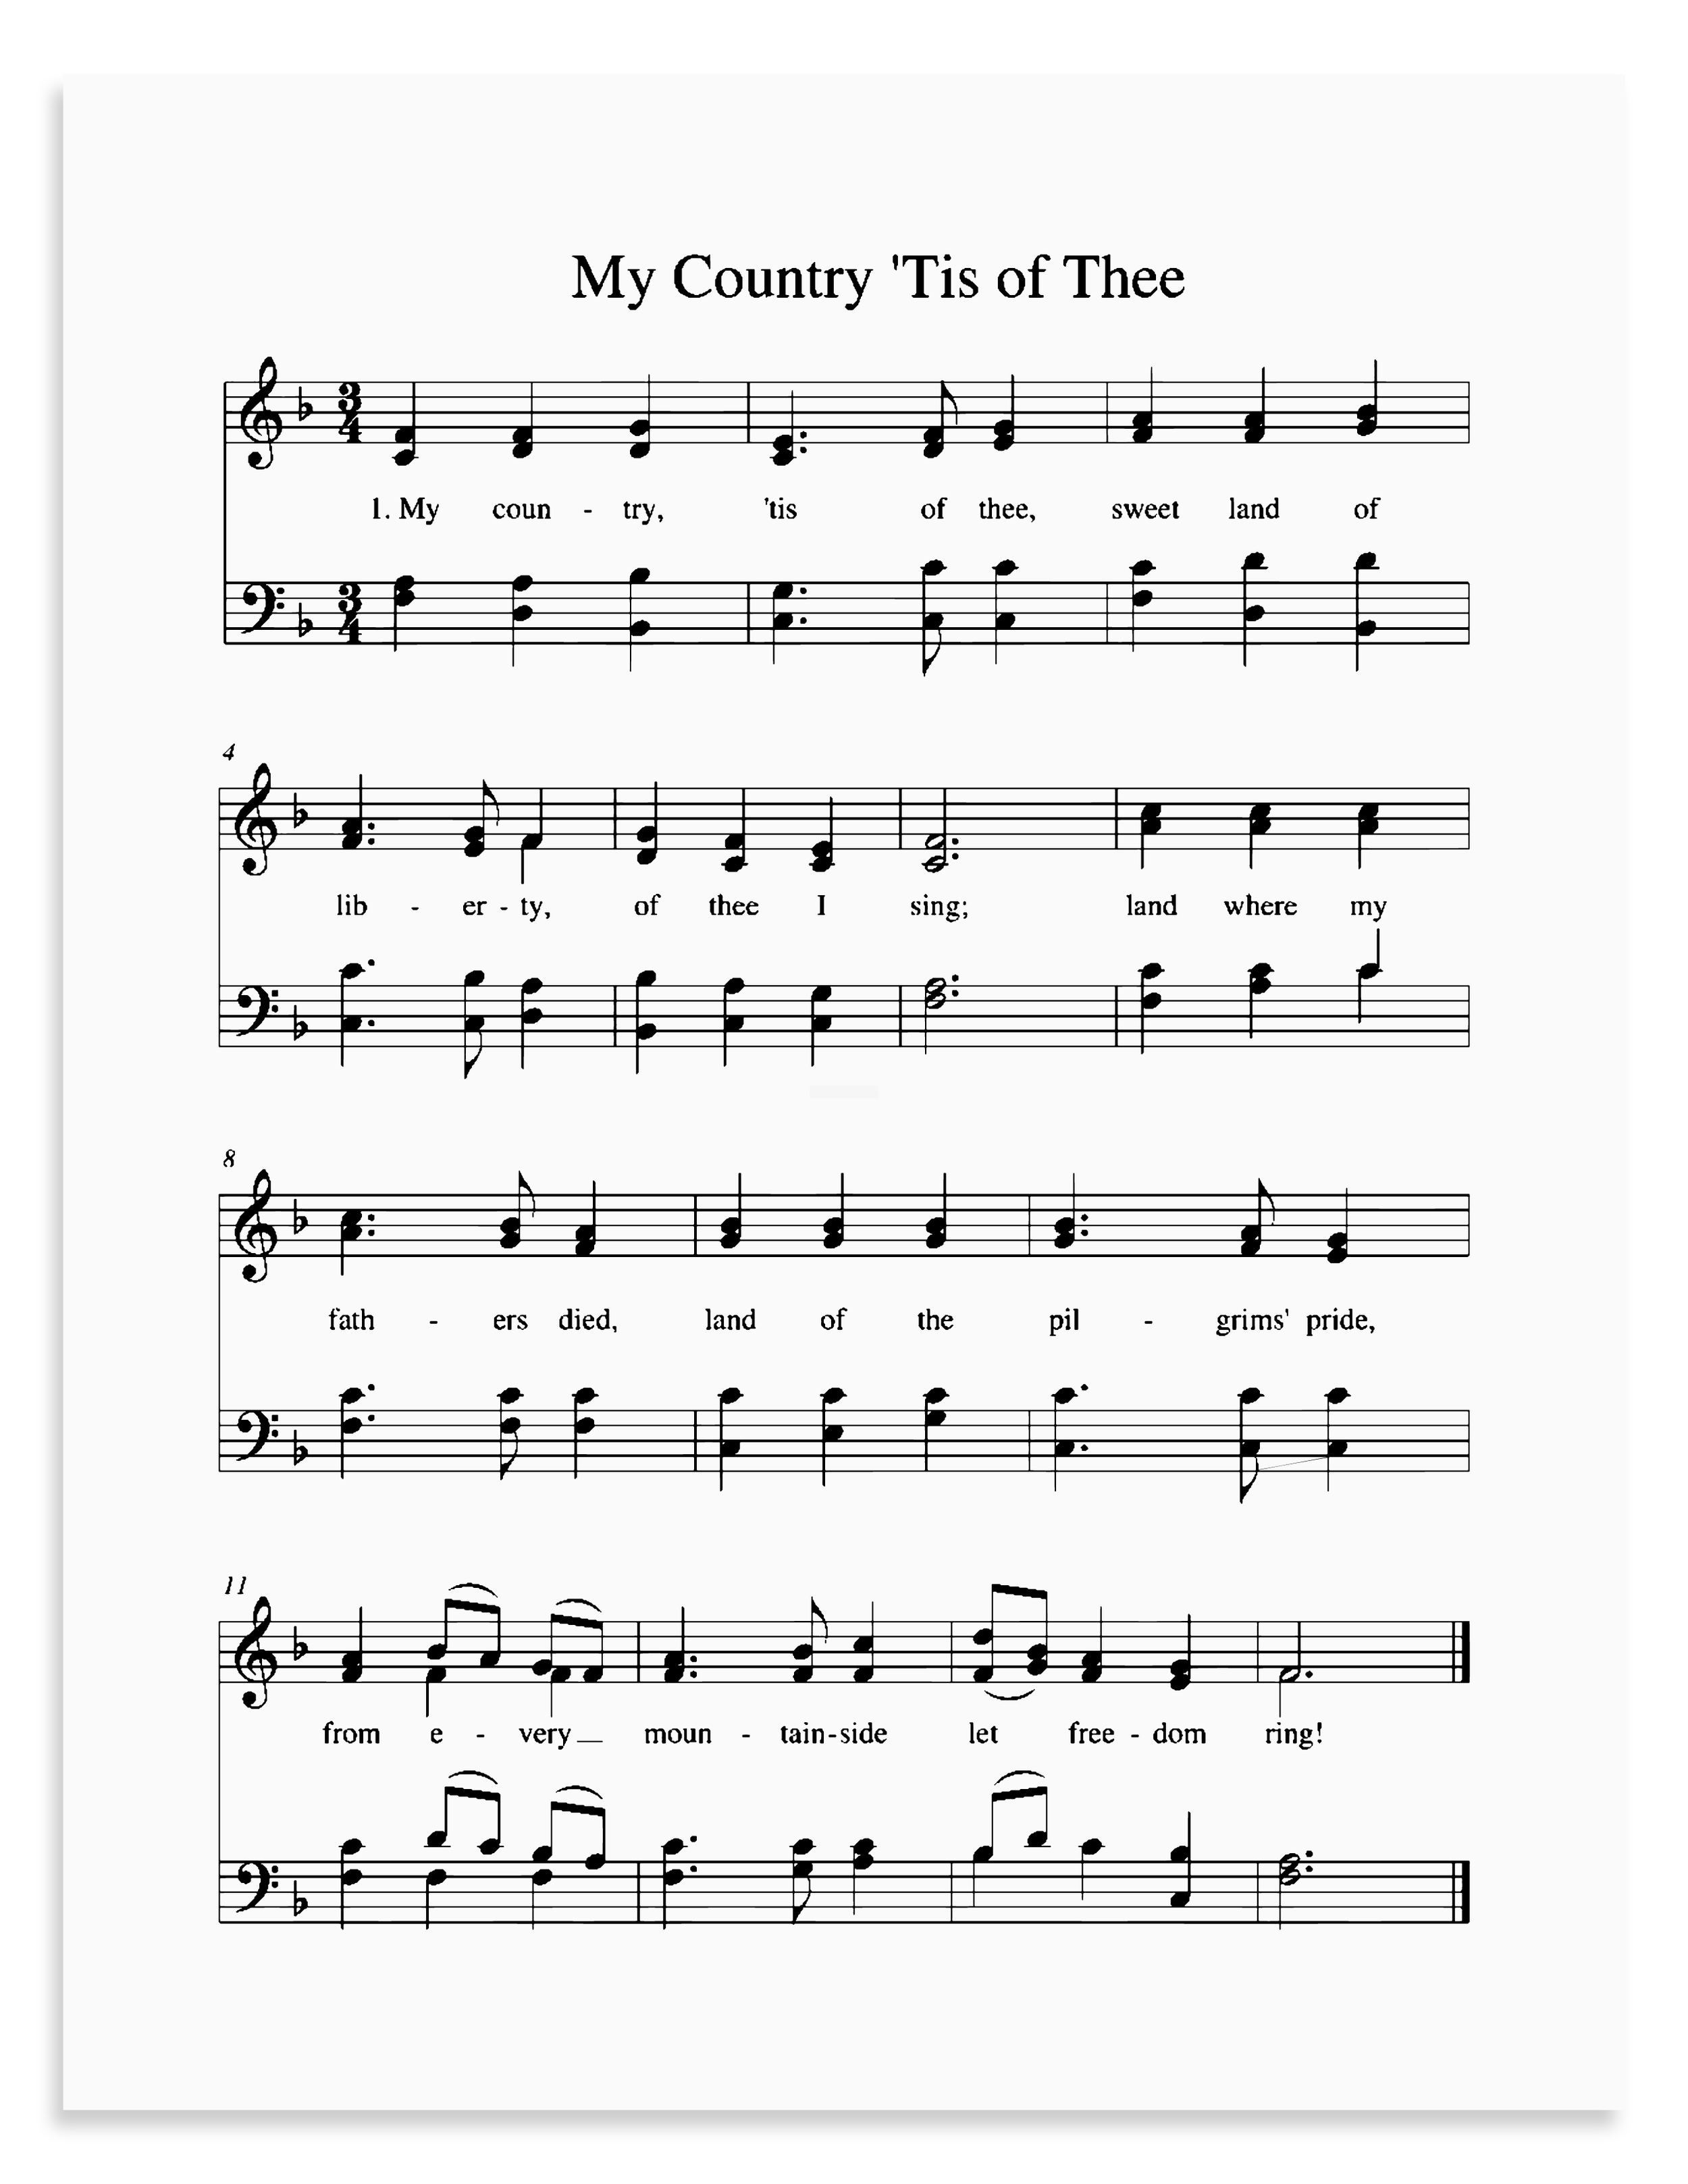 My Country 'Tis of Thee in six different keys - free printable.png